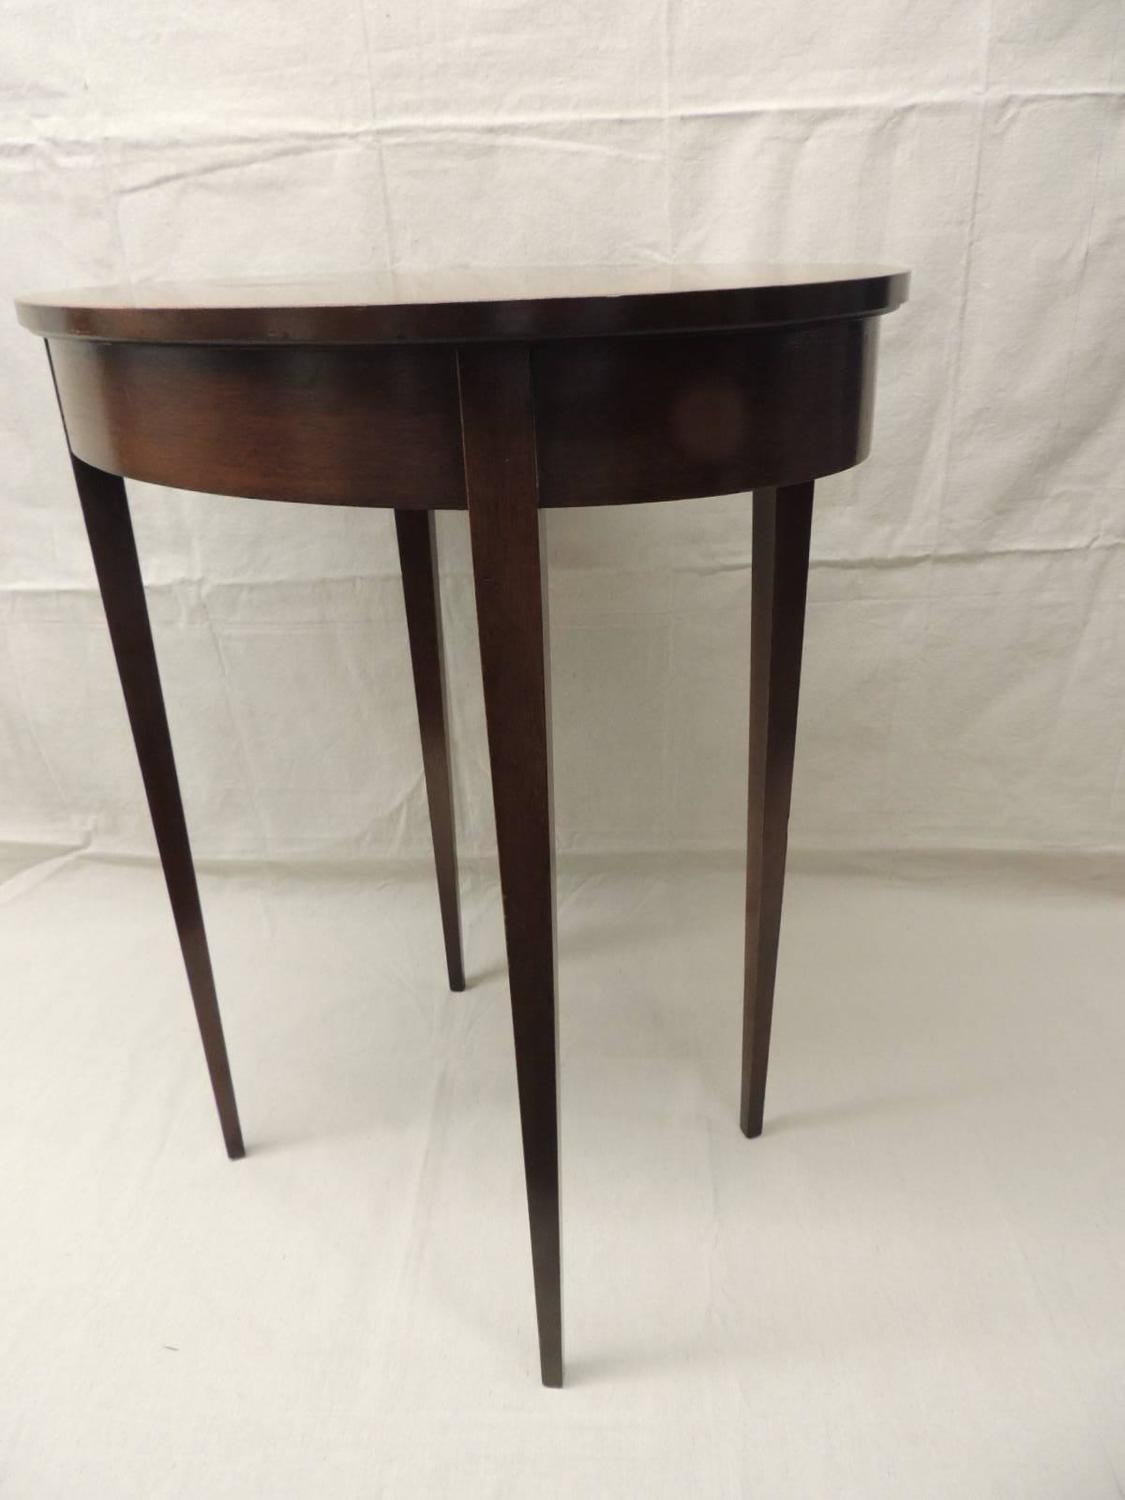 vintage oval wood side table with square tapered legs for sale at 1stdibs. Black Bedroom Furniture Sets. Home Design Ideas